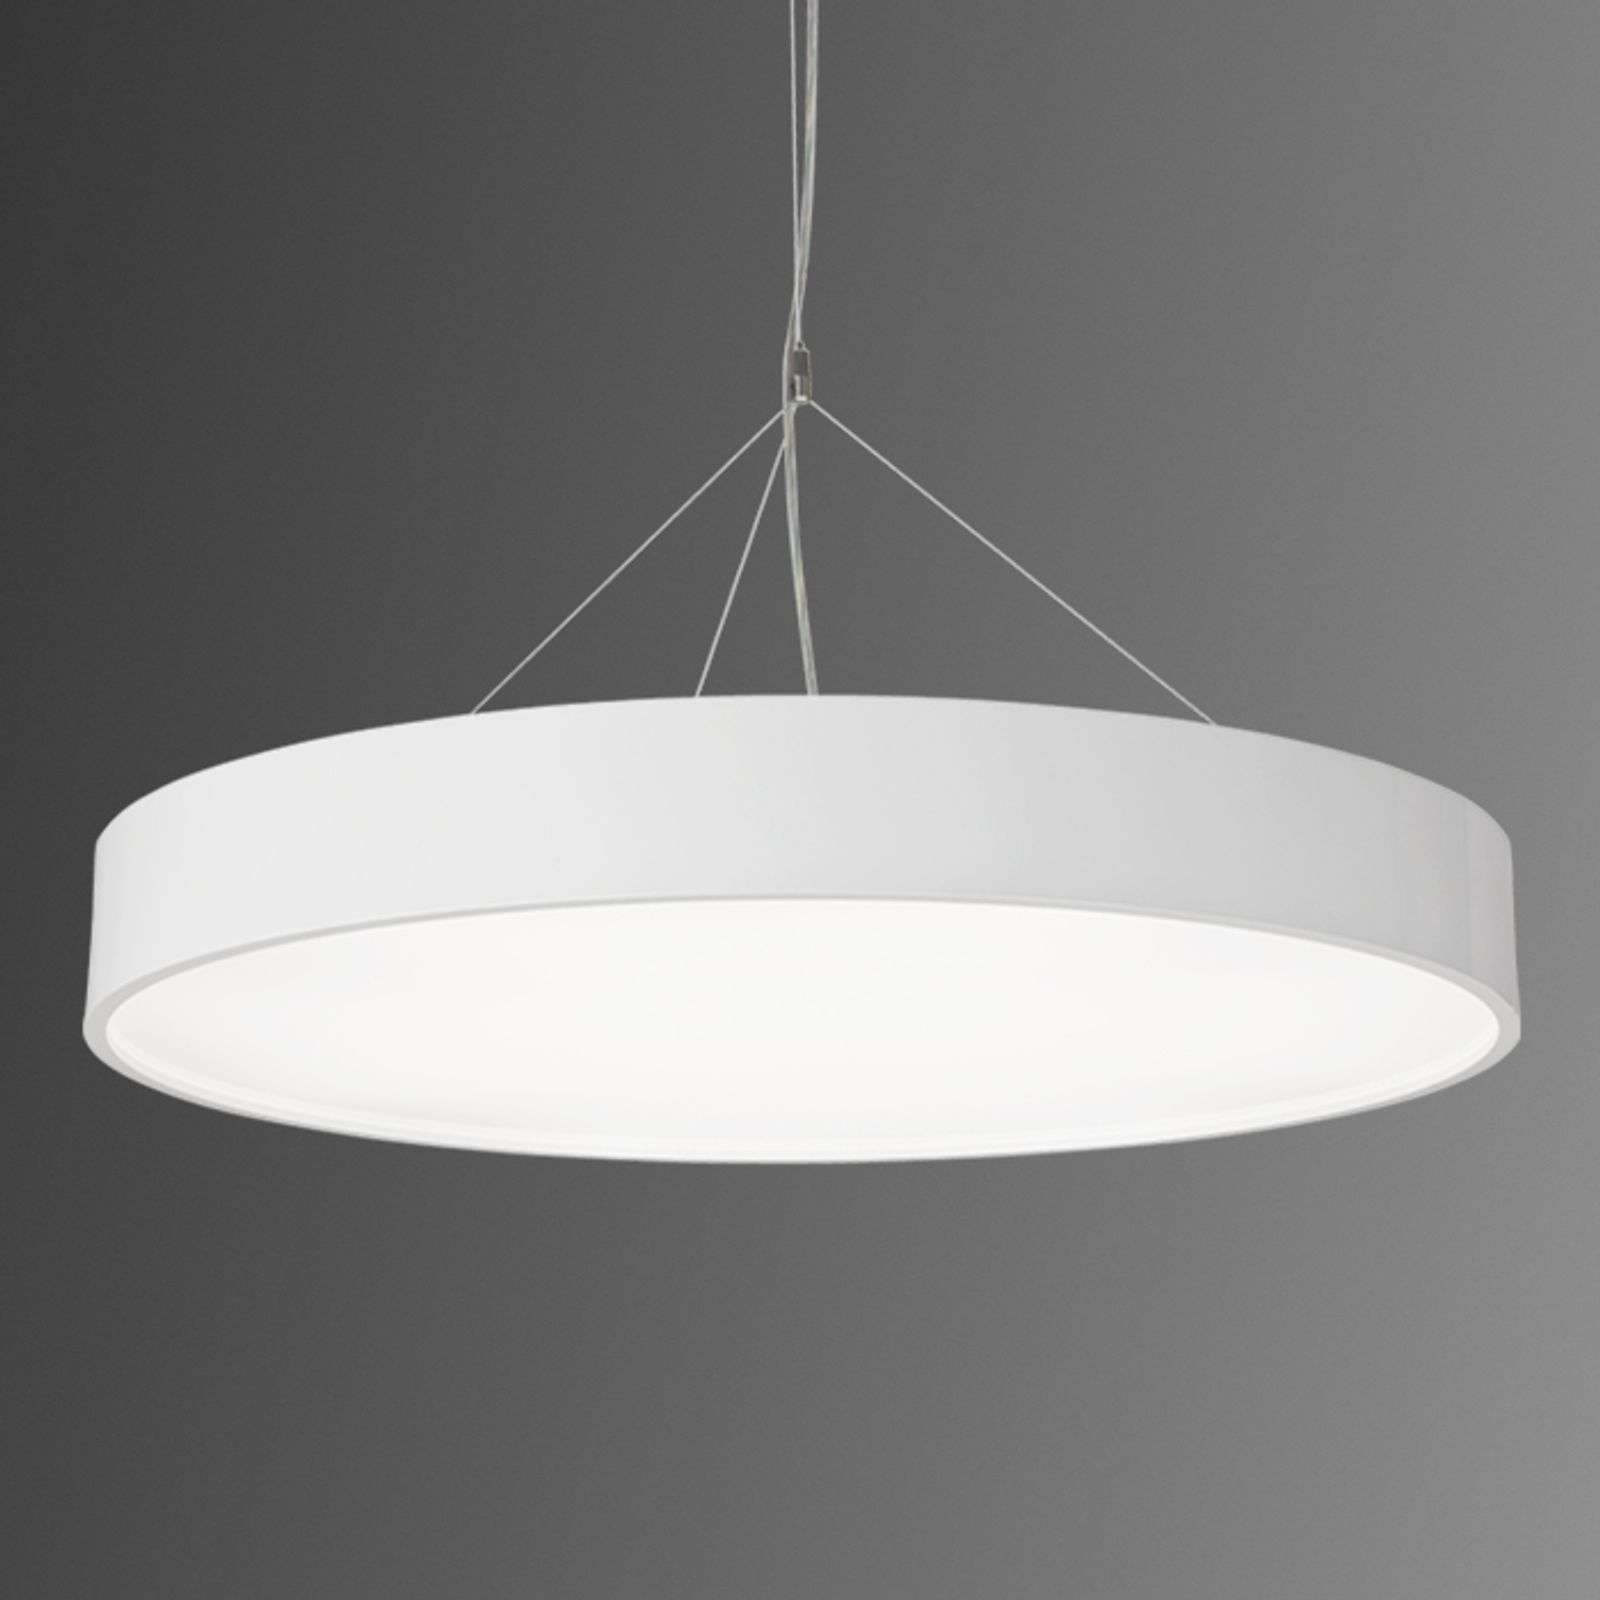 Suspension LED Modul P945 ronde blanche